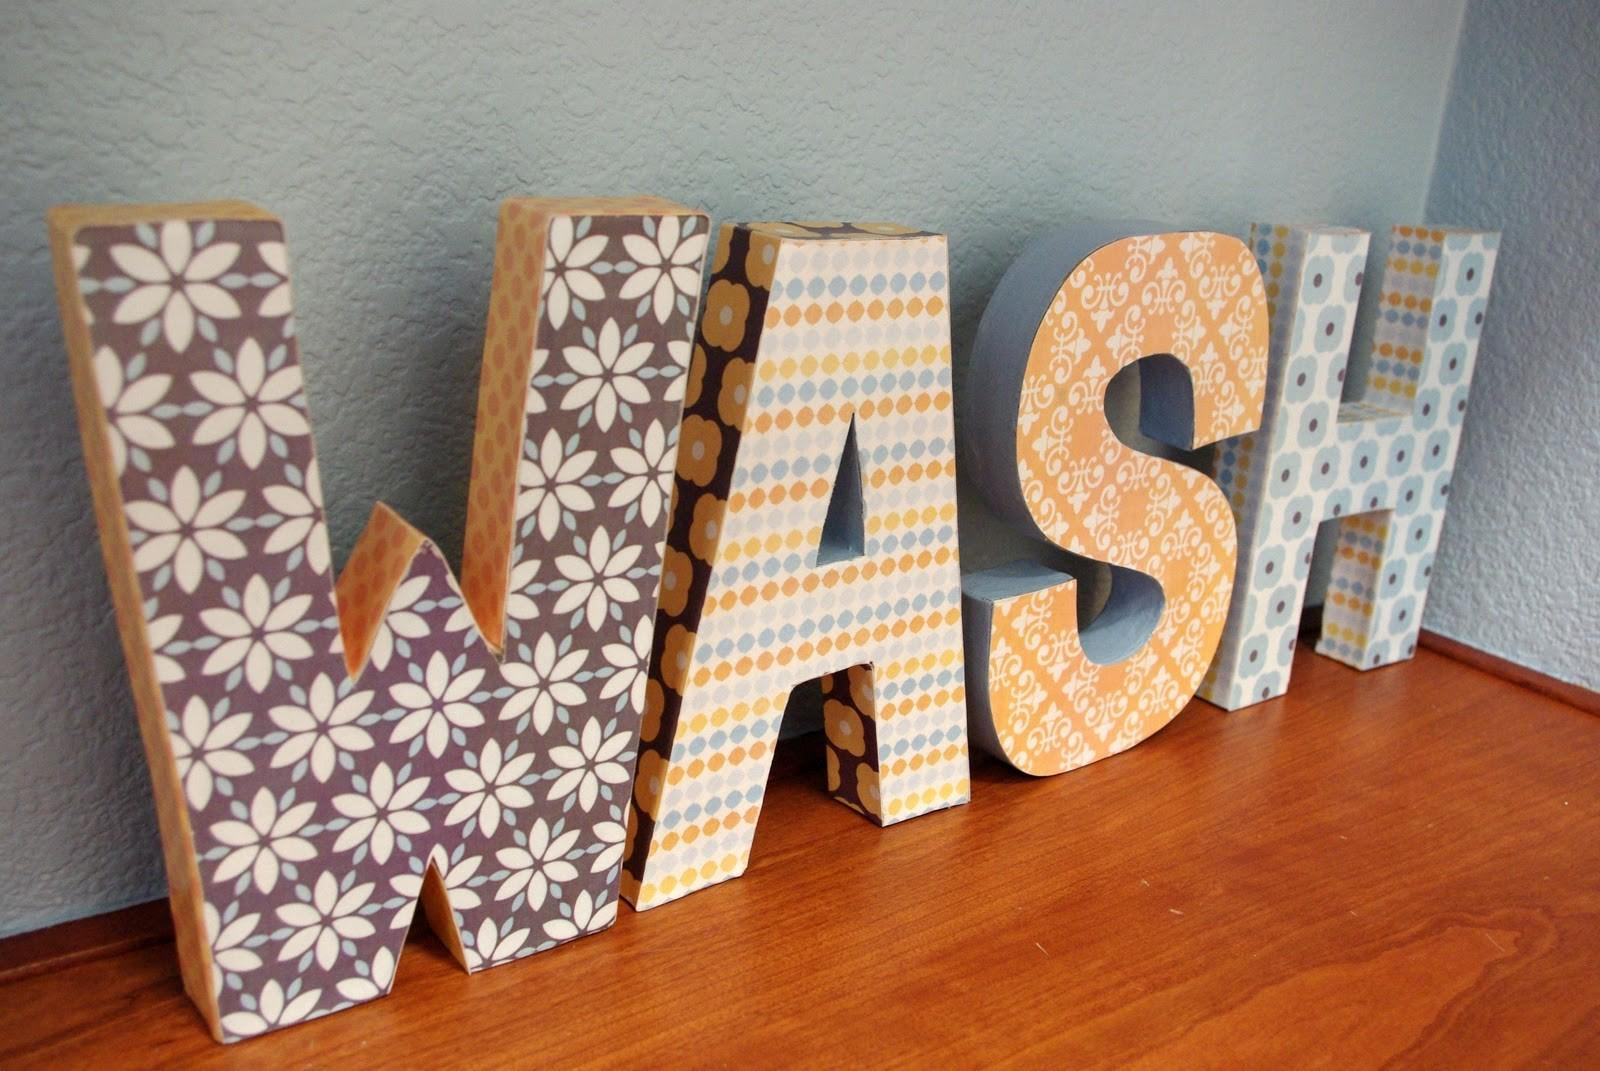 Paper Mache Letters Happiness Homemade